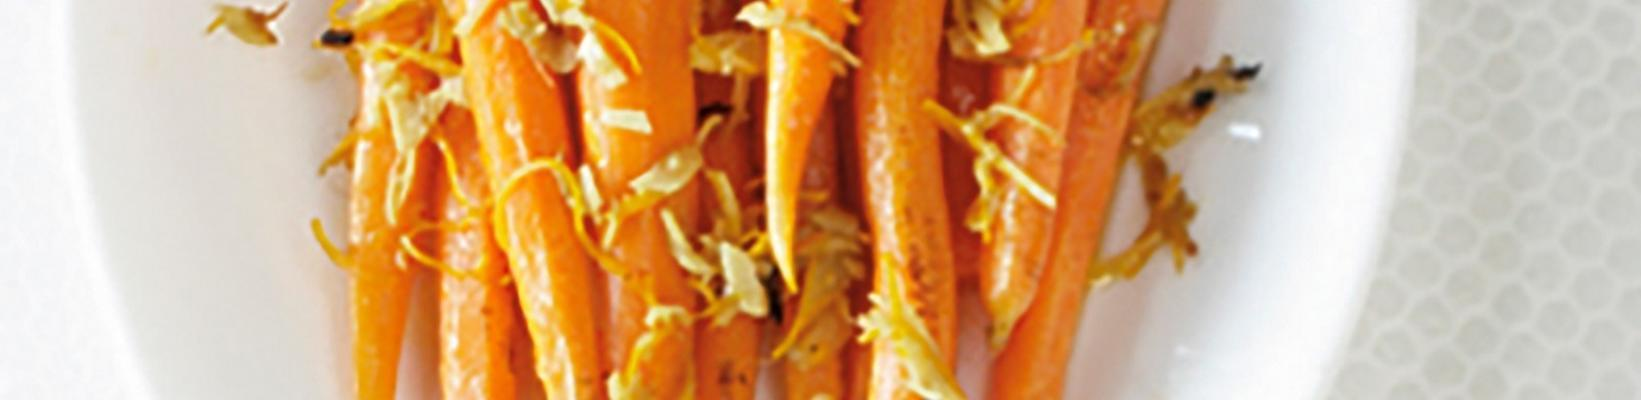 roasted carrots with ginger oil